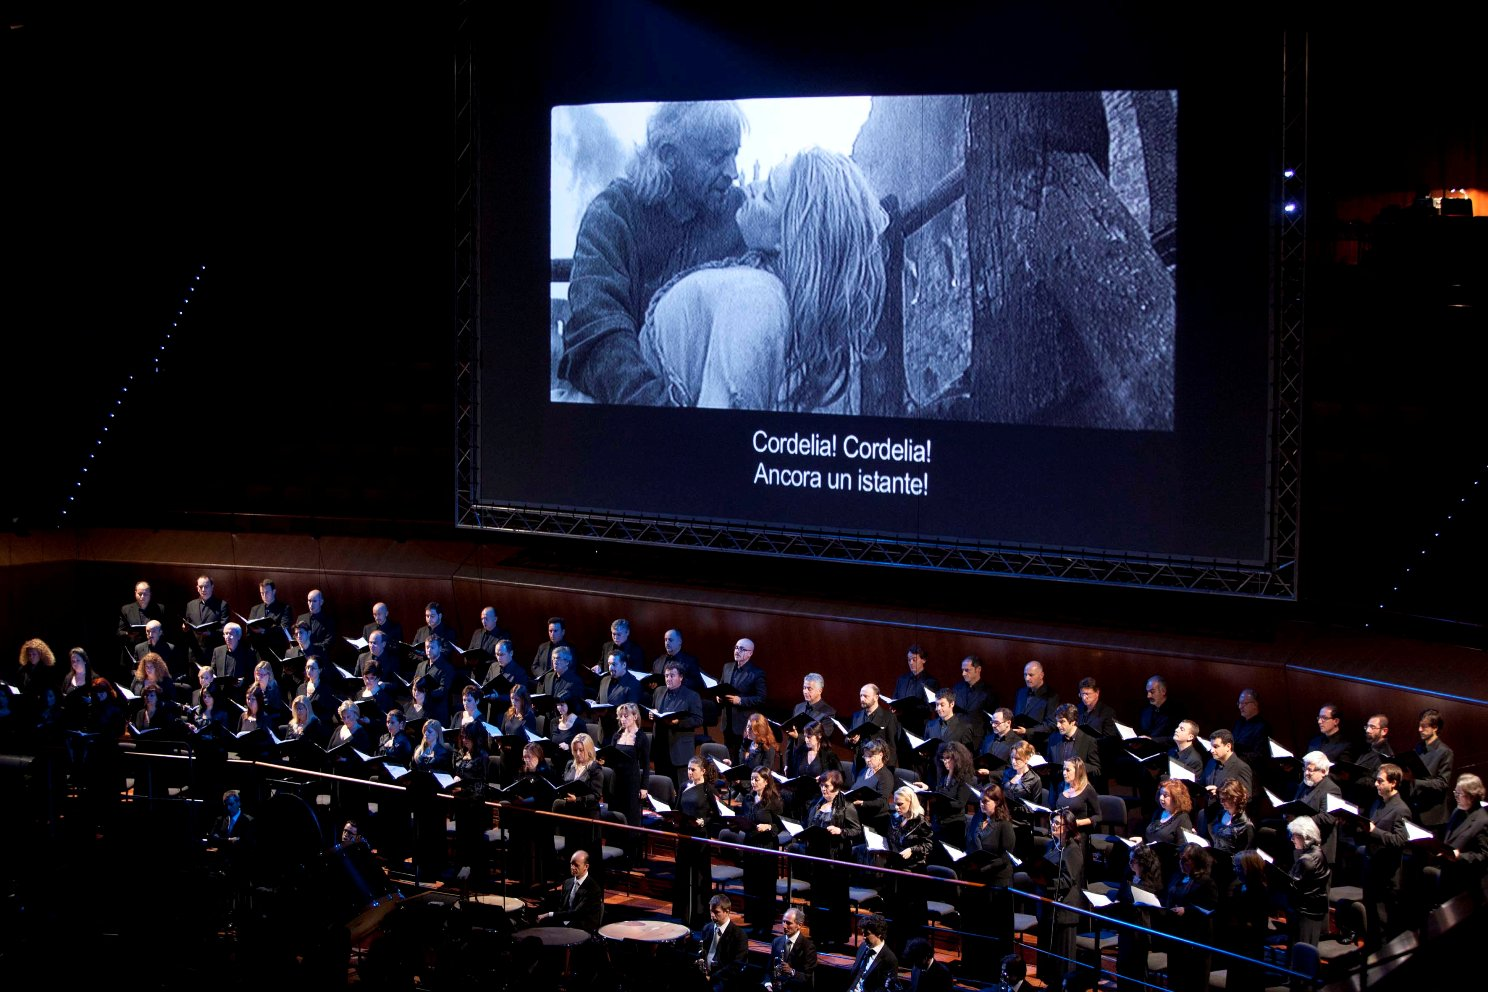 Accademia di Santa Cecilia chorus conducted by Abbado in Shostakovich's music for Kozintsev's film of King Lear